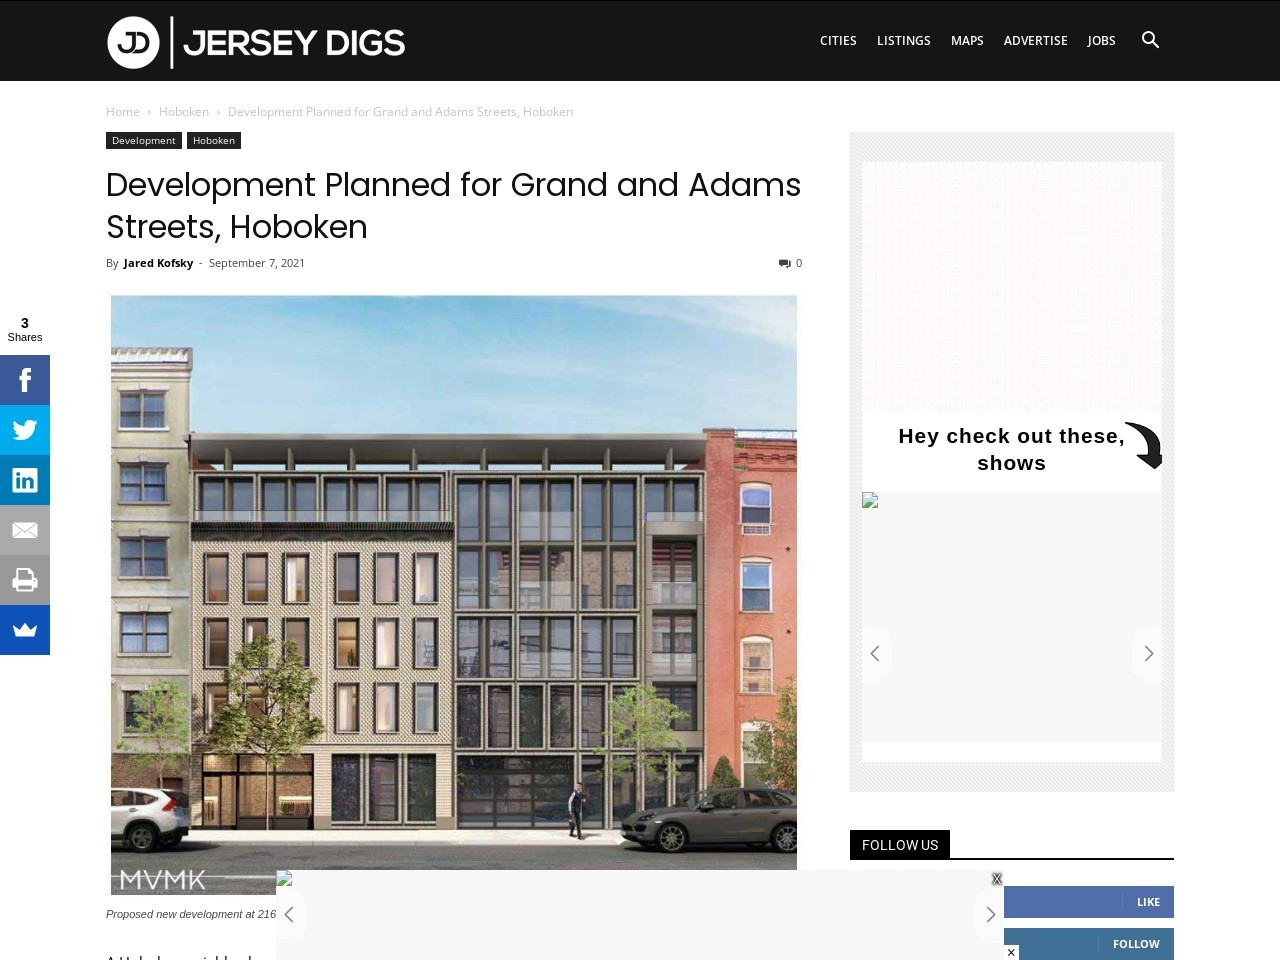 Development Planned for Grand and Adams Streets, Hoboken